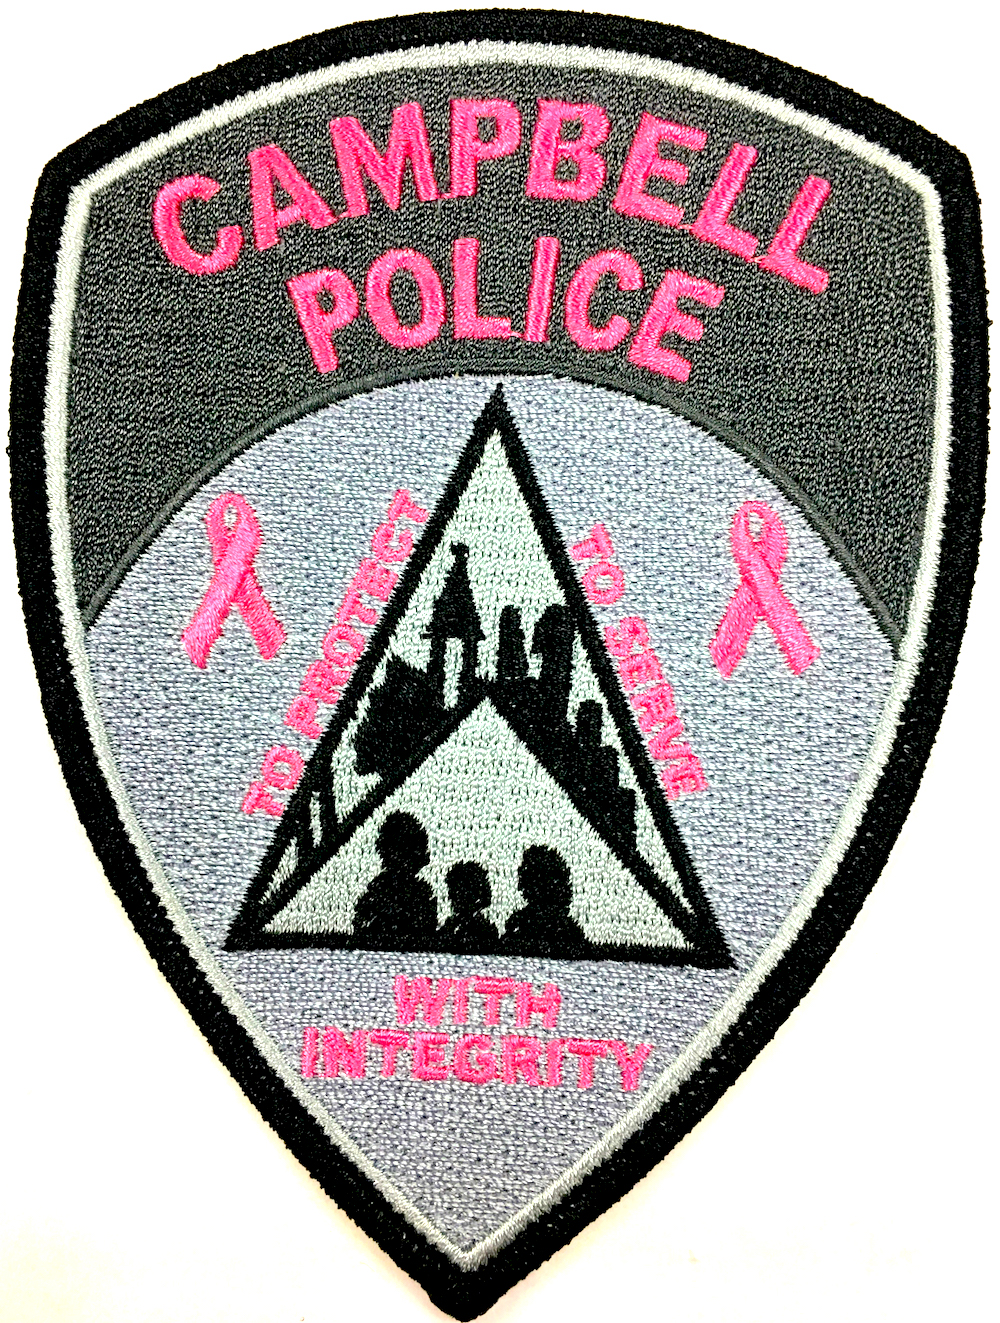 Campbell Pink Patch 2017.jpg